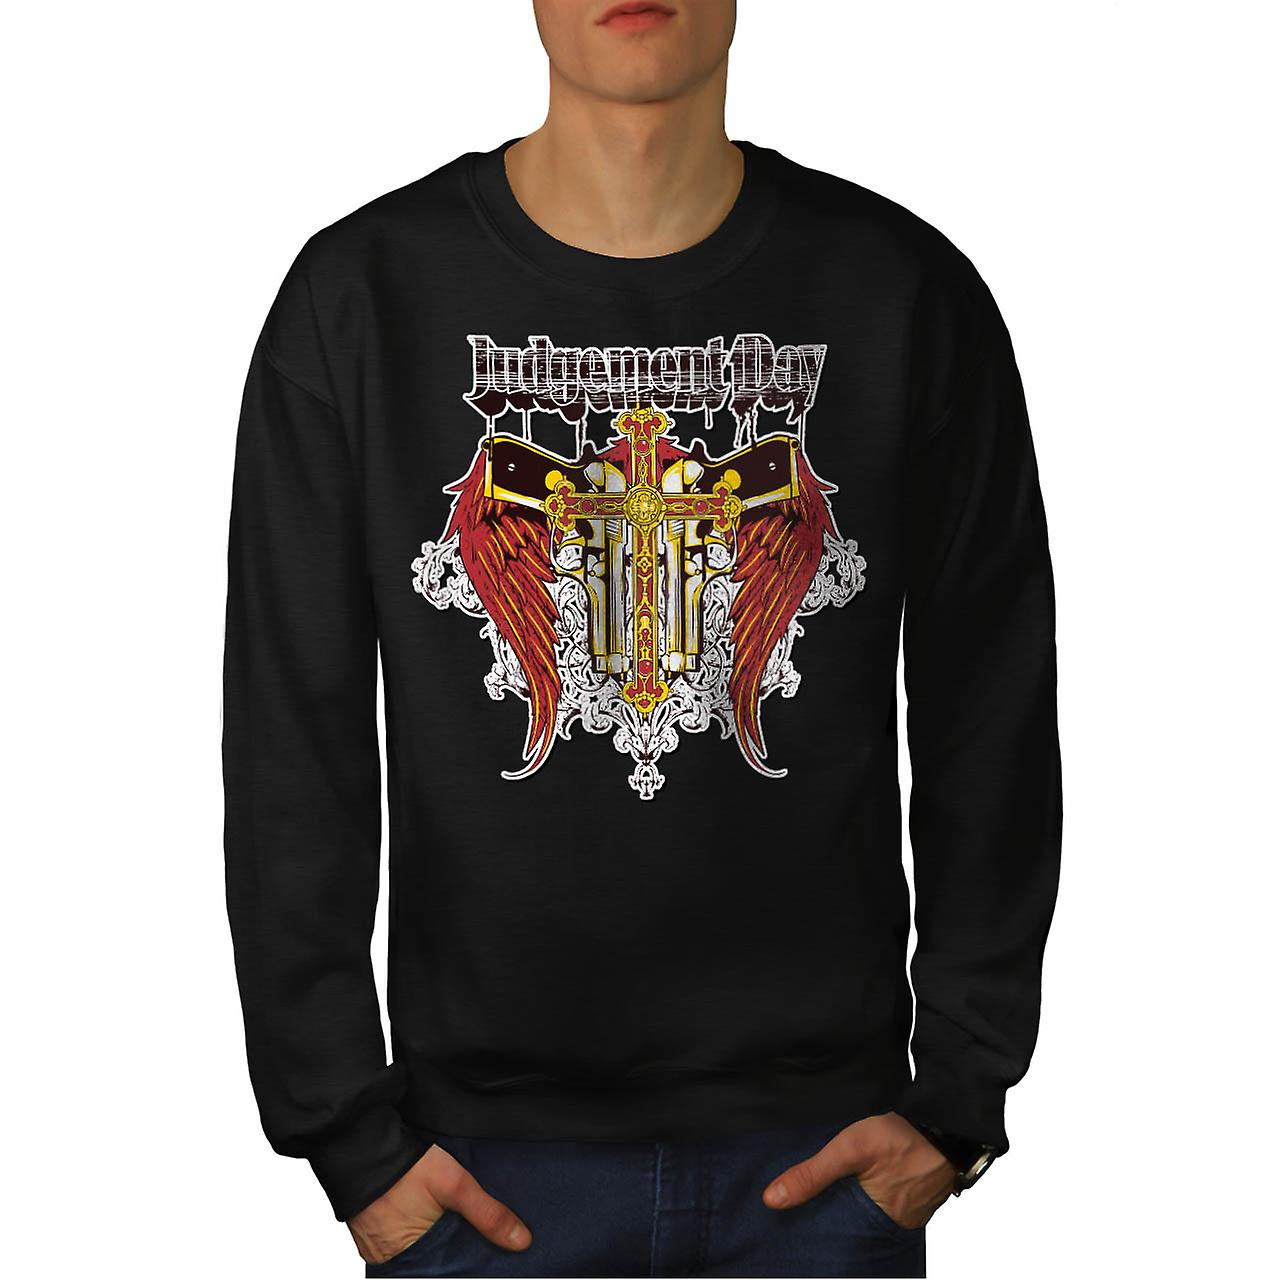 Judgement Day Hell Devils Lair Men Black Sweatshirt | Wellcoda